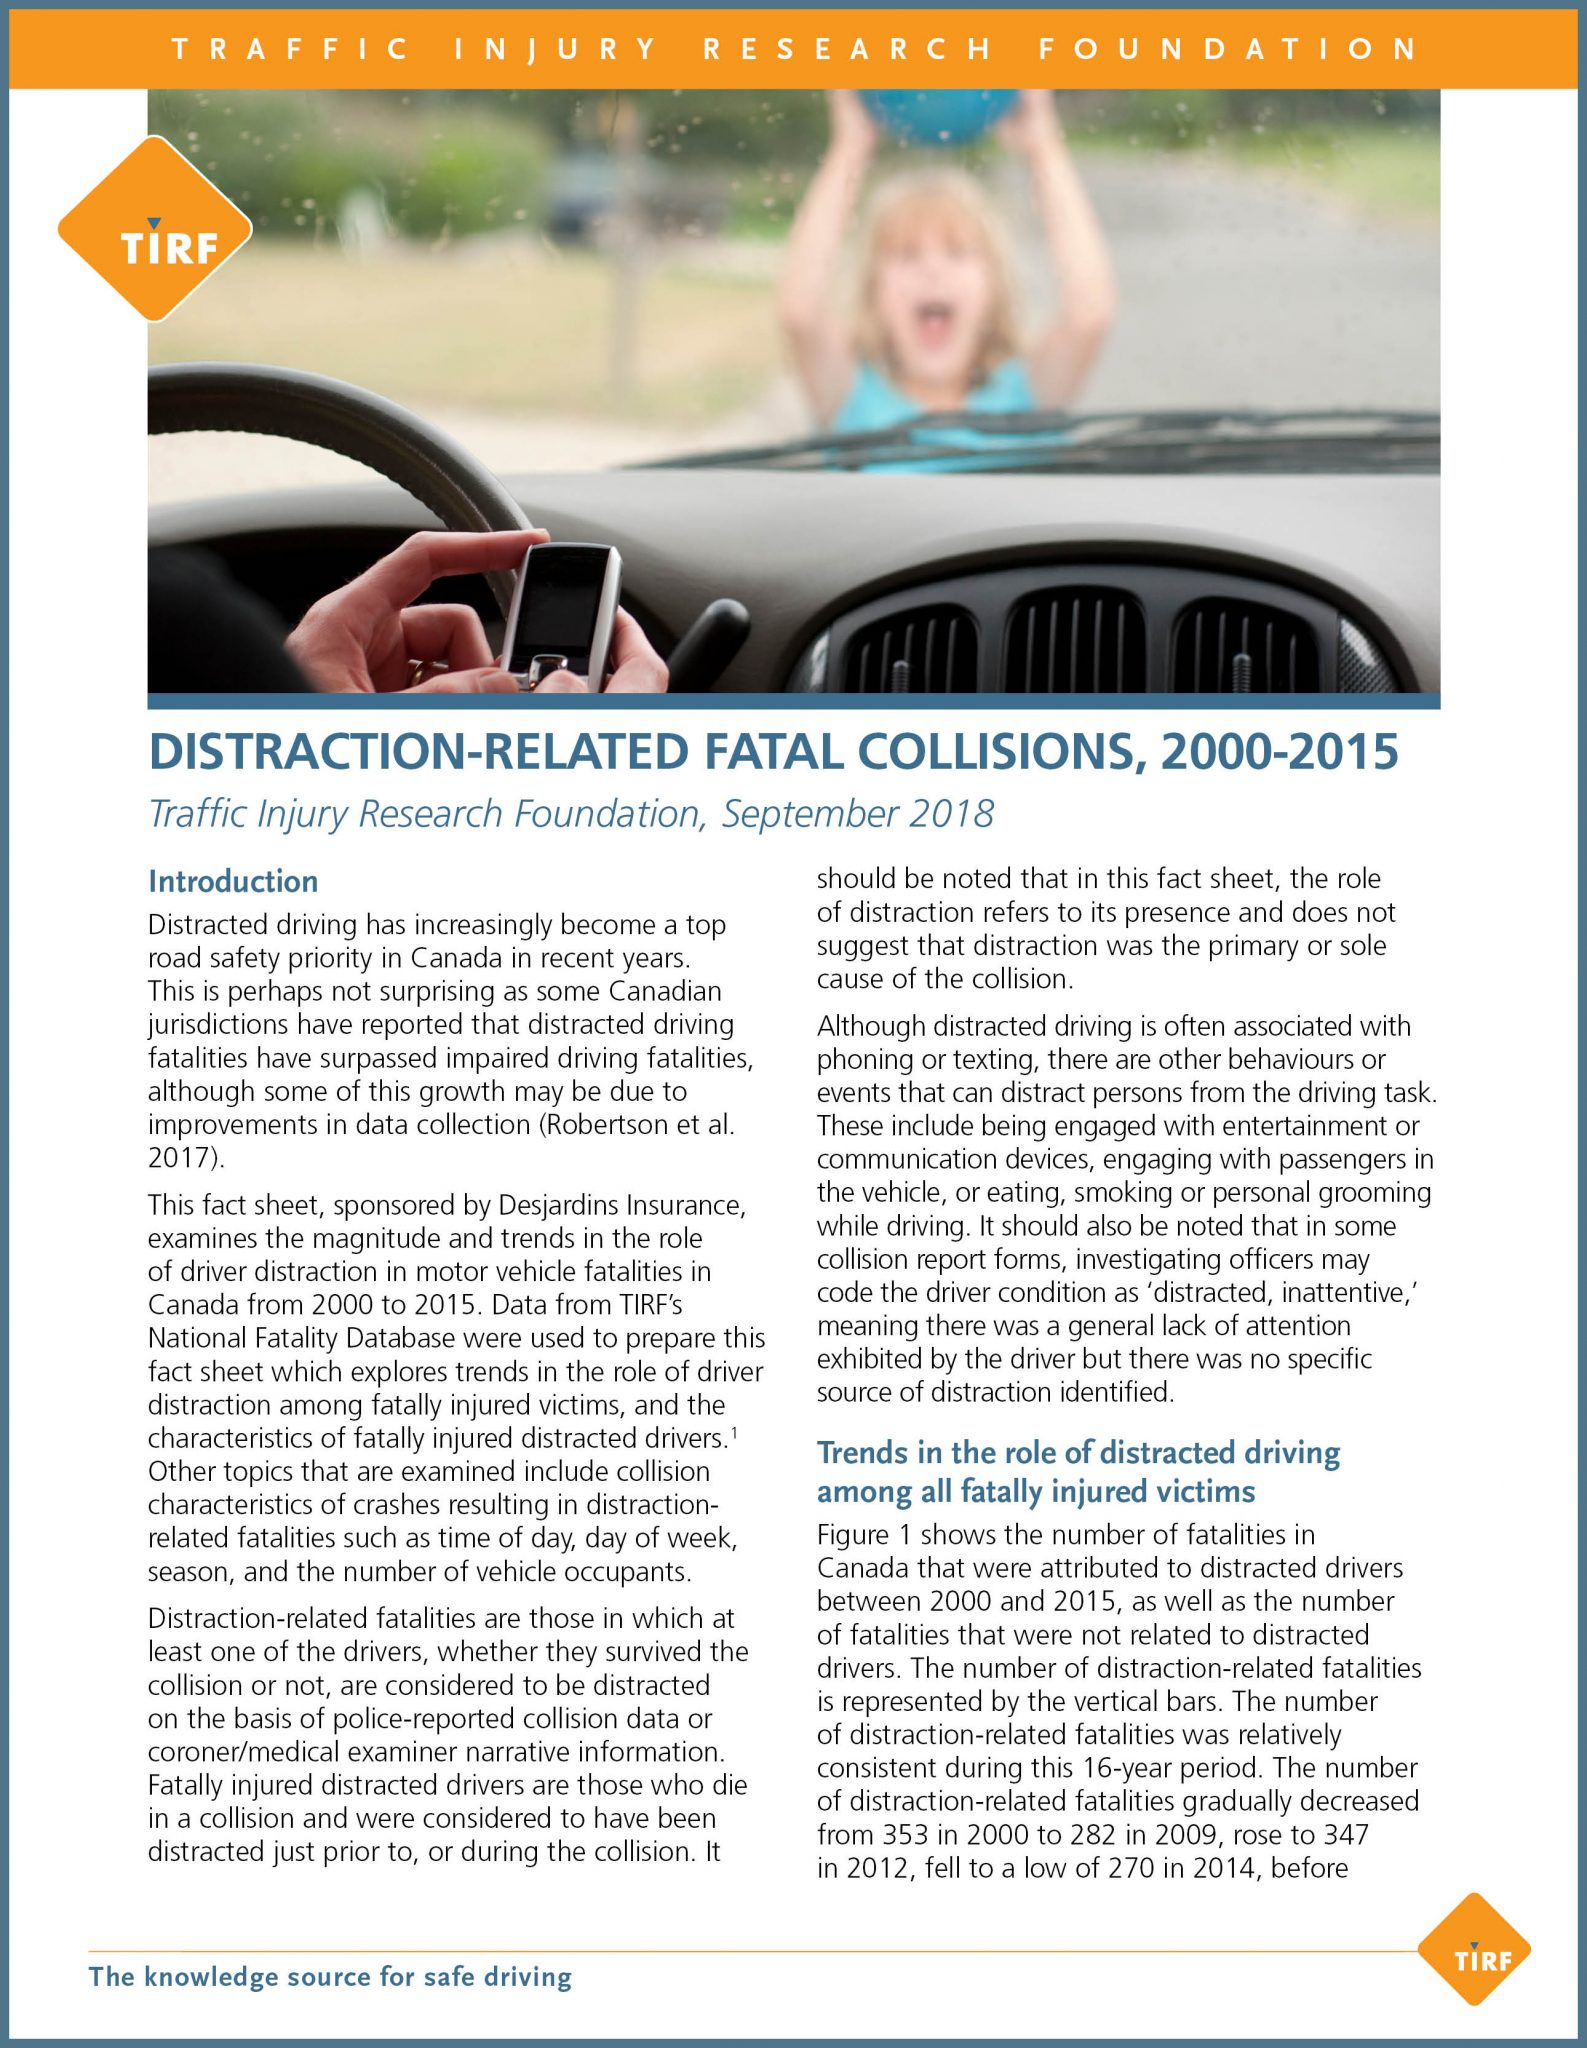 Distraction-Related Fatal Collisions, 2000-2015